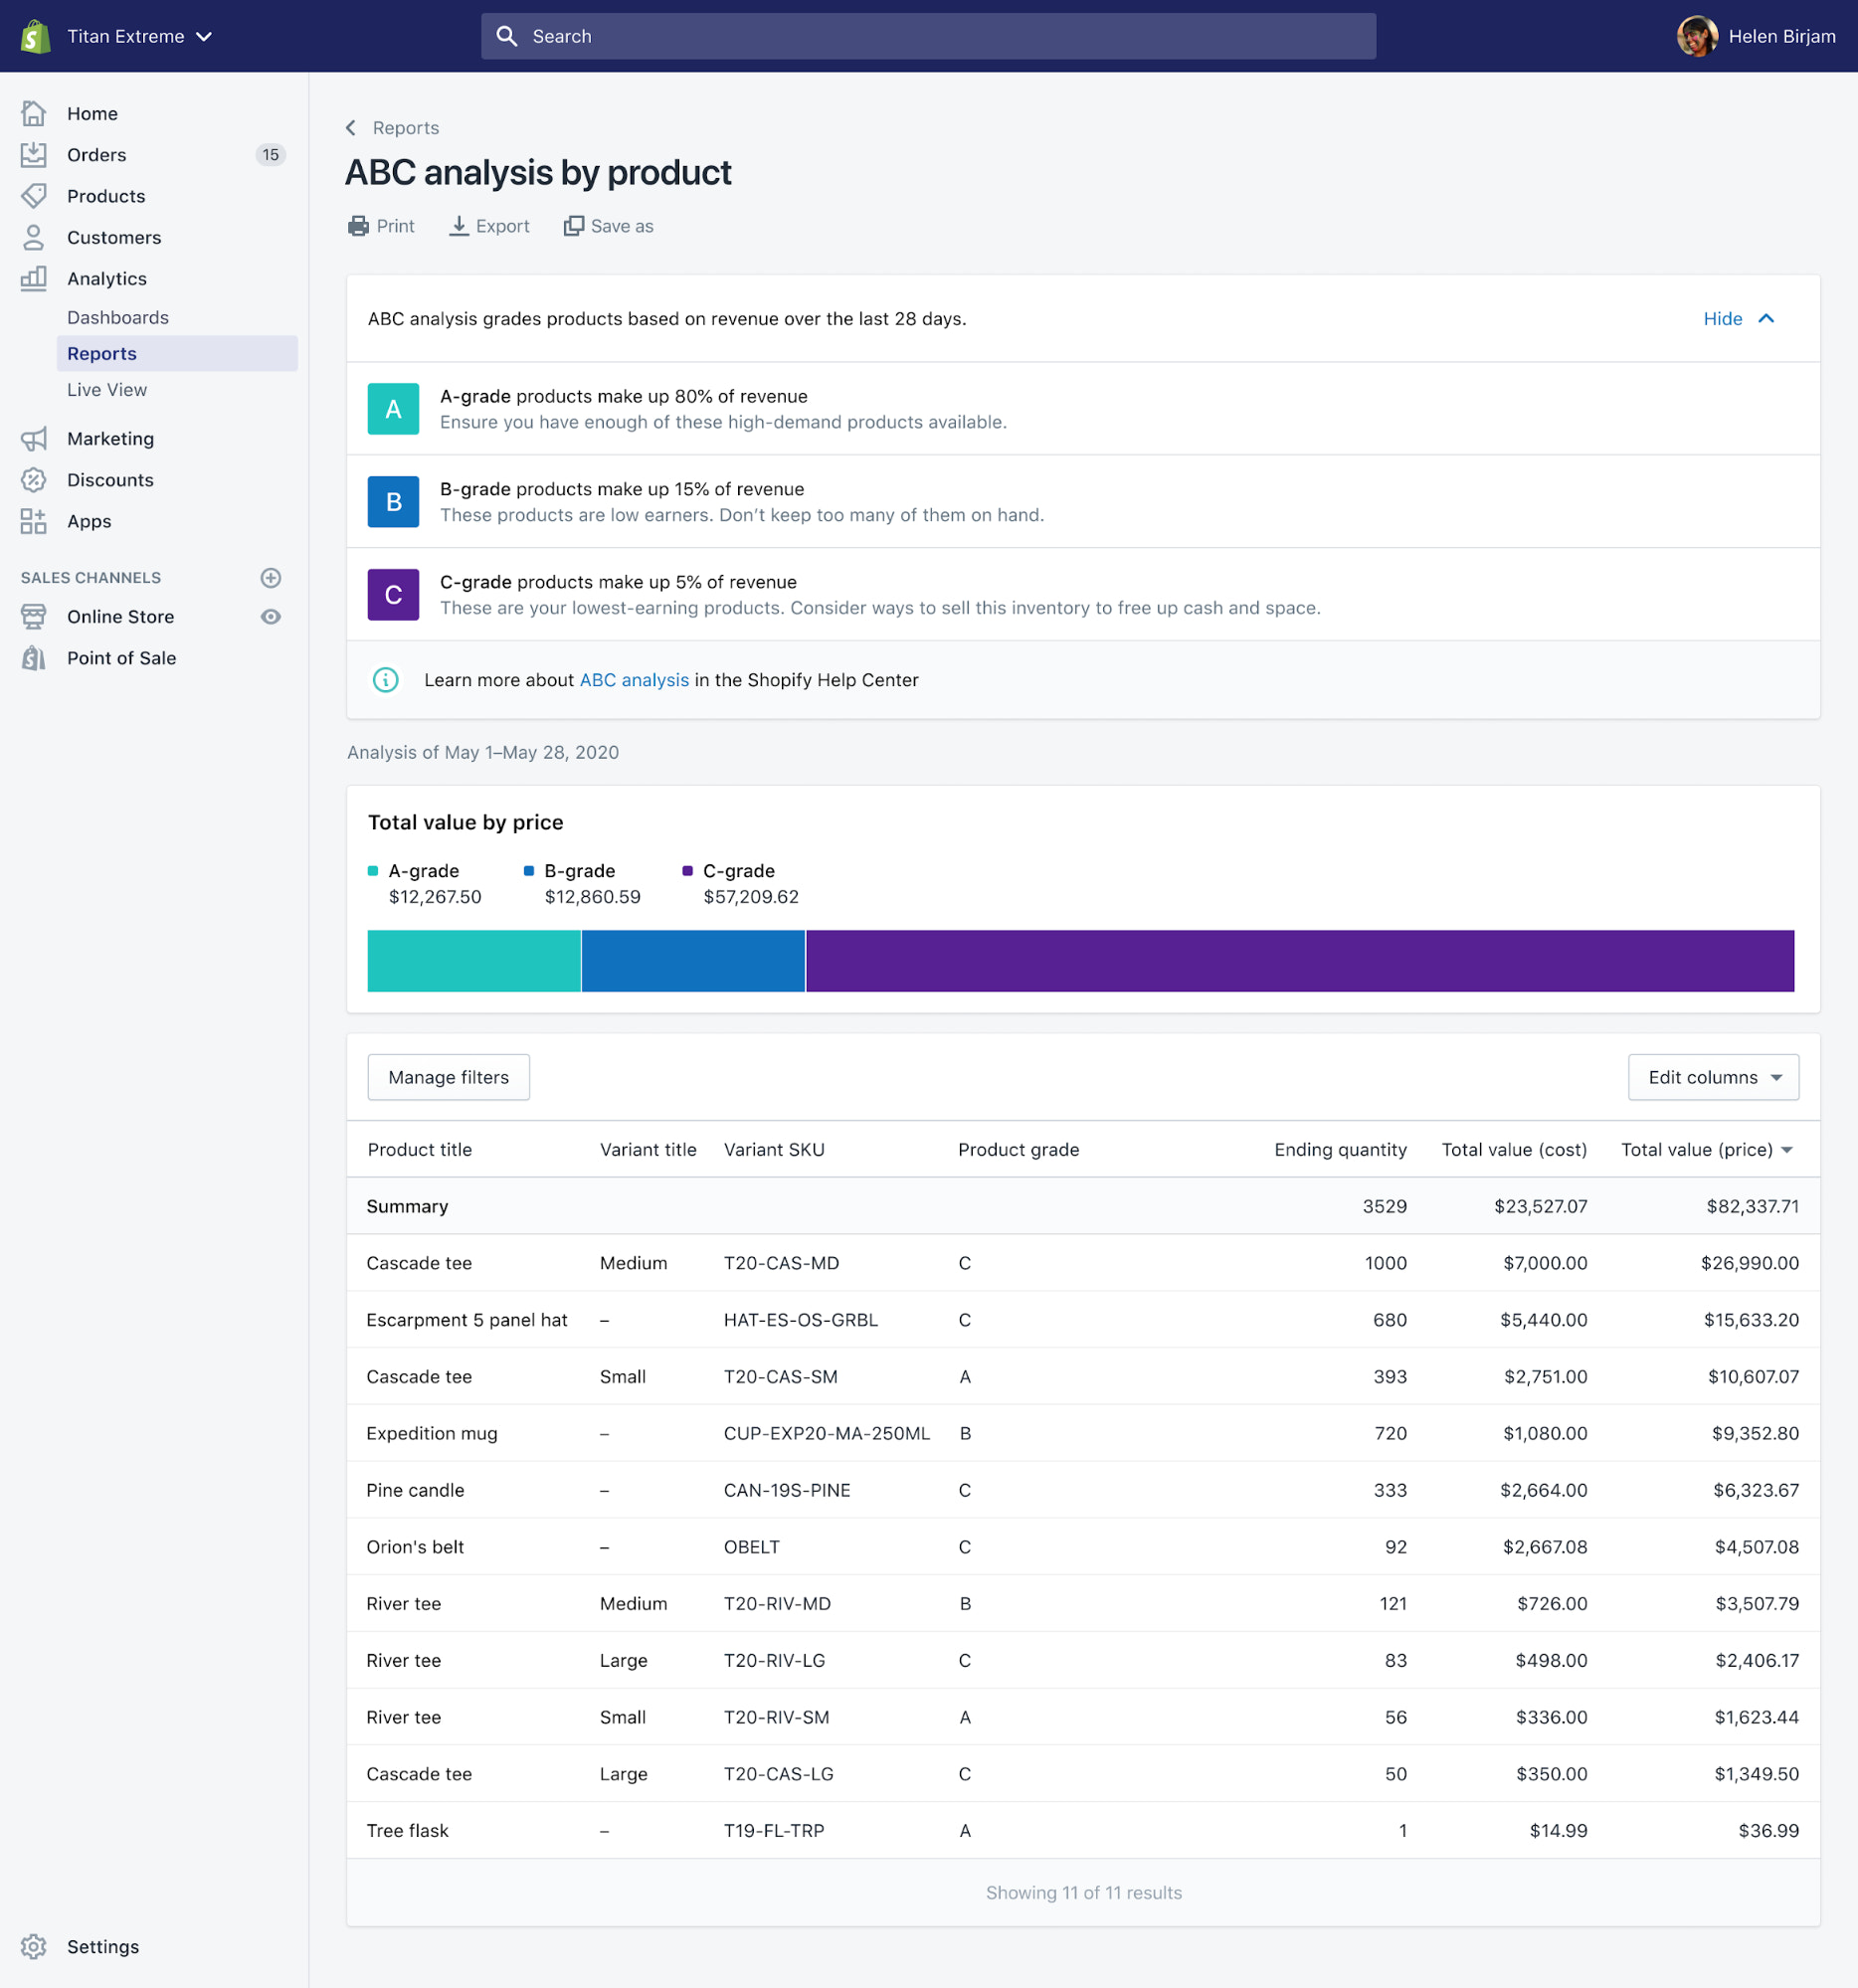 ABC analysis by product report